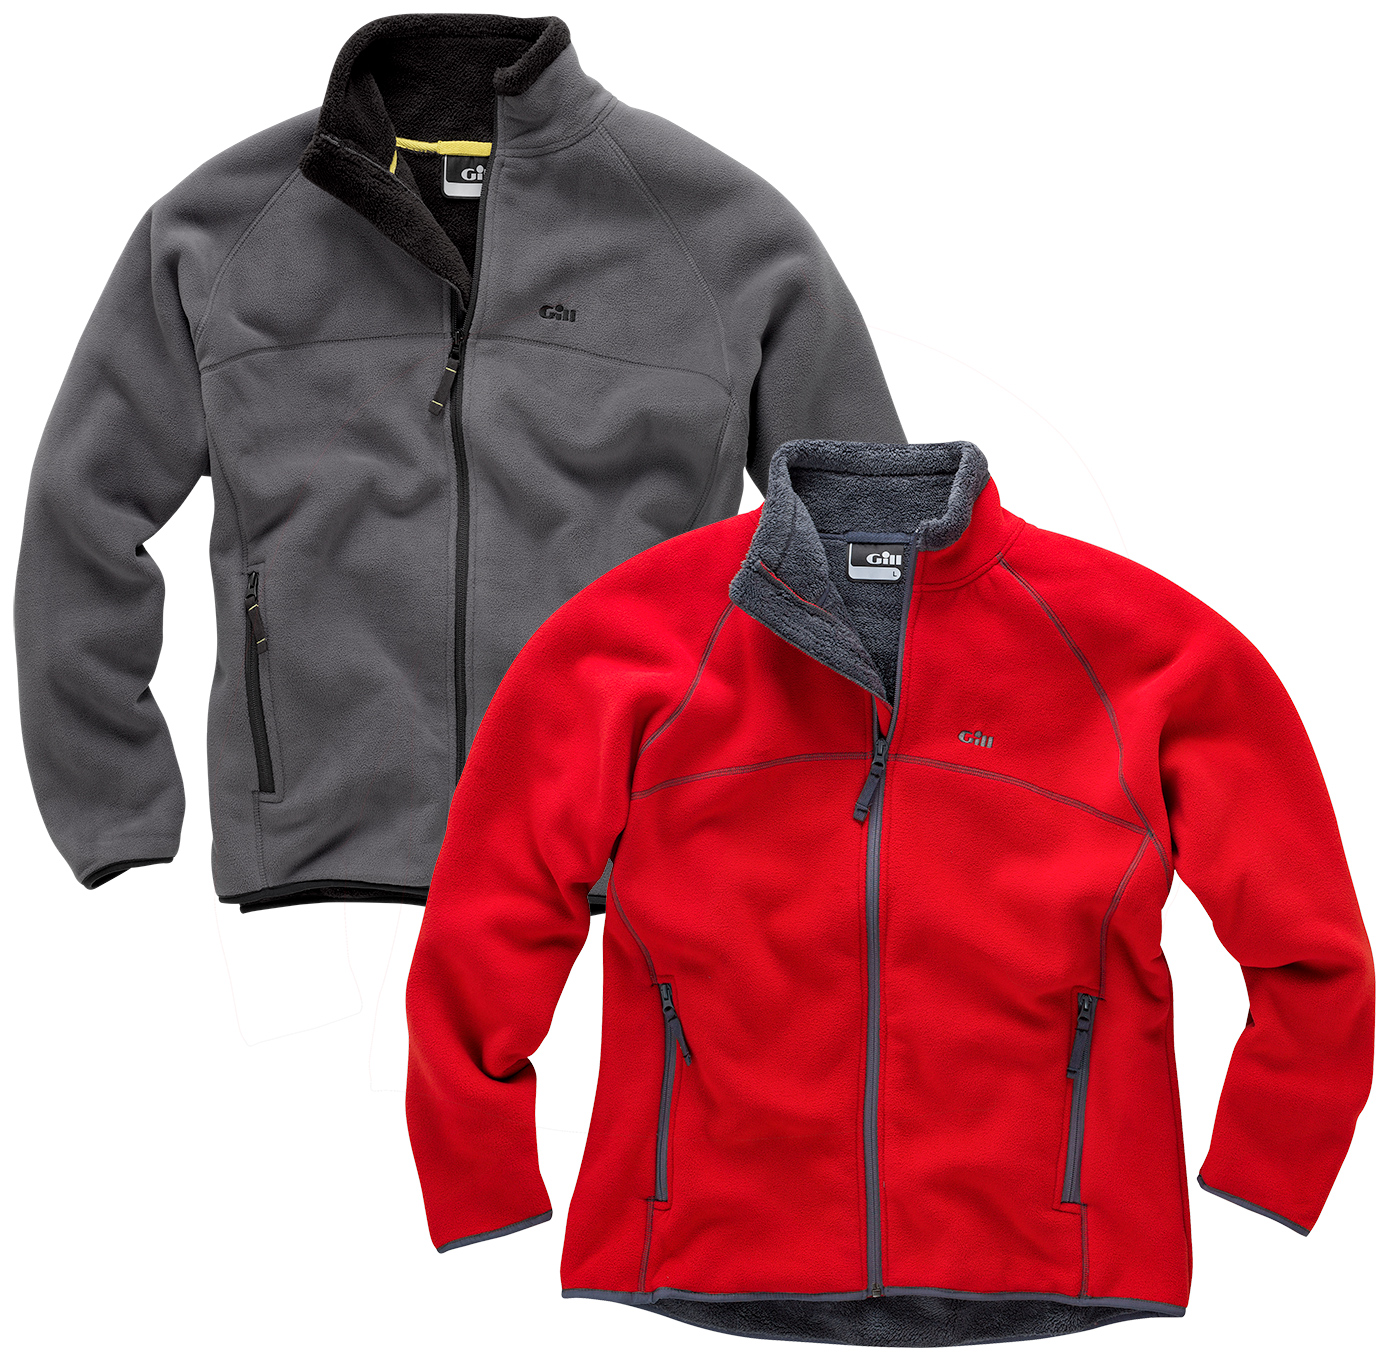 Gill i4 Polar Fleece Jacket